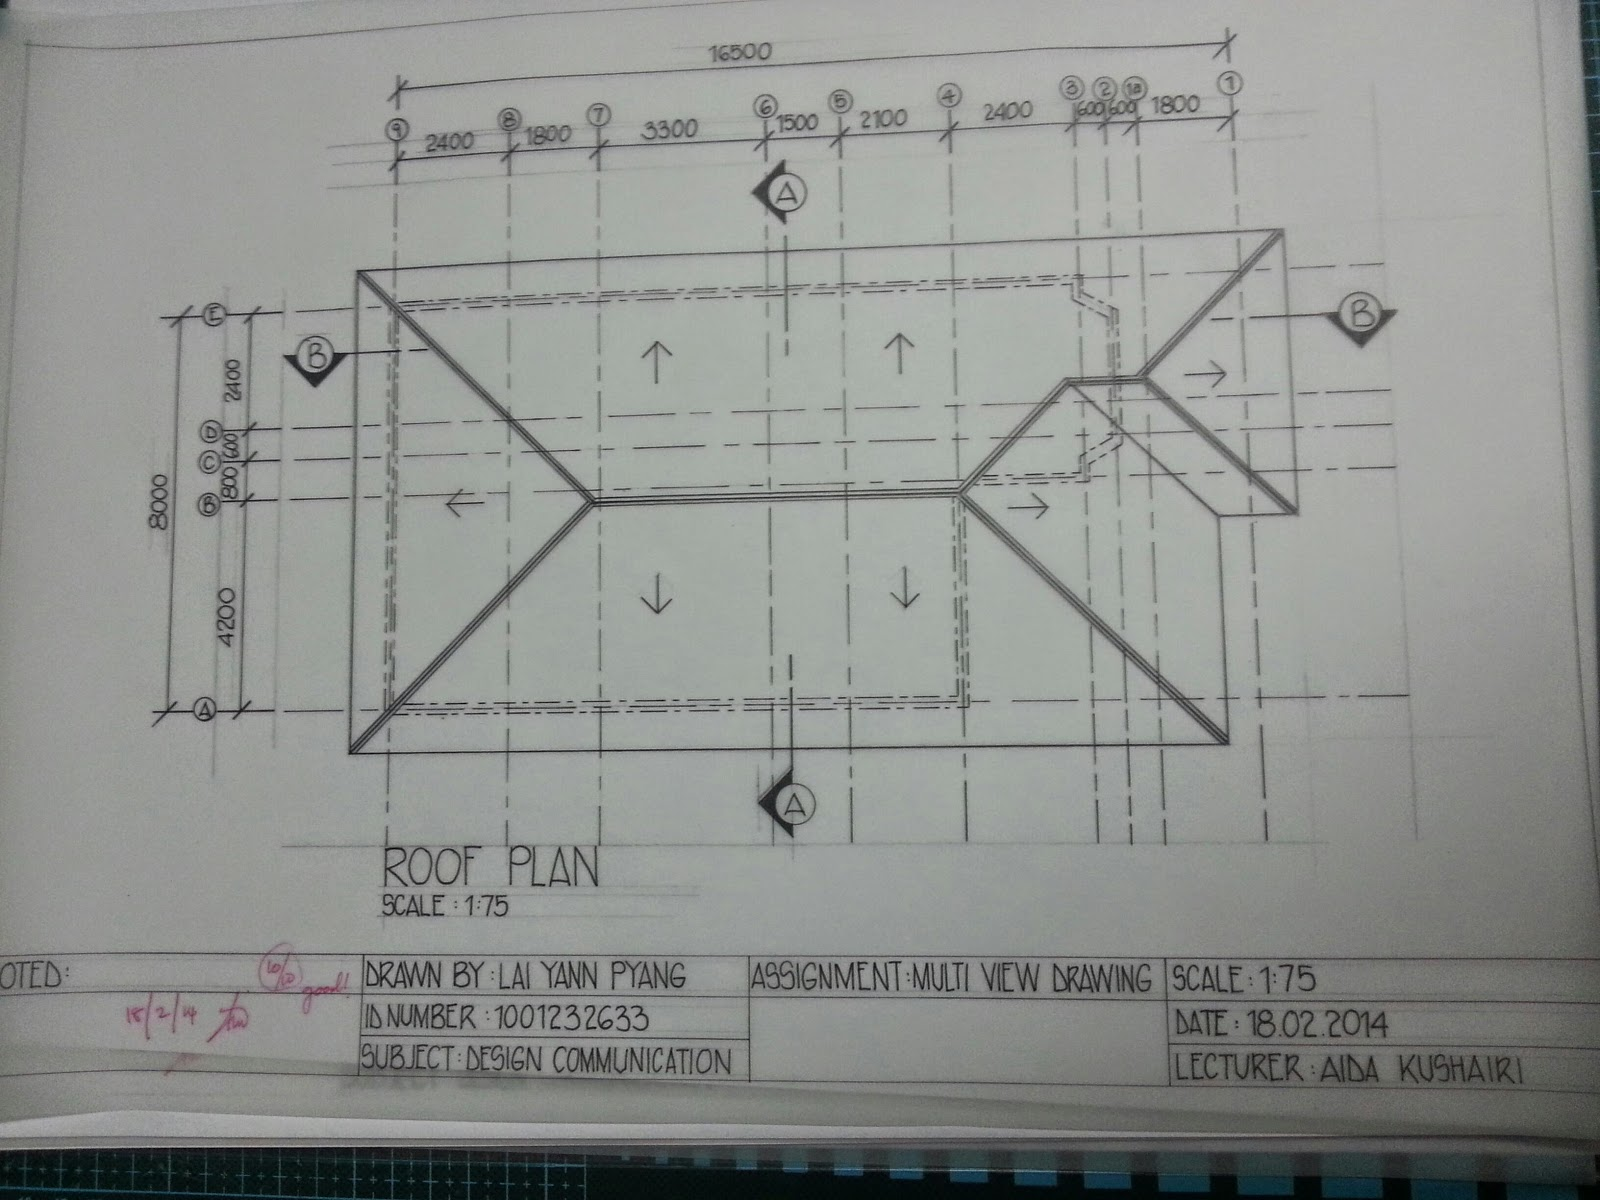 Roof plan for Roof plan drawing